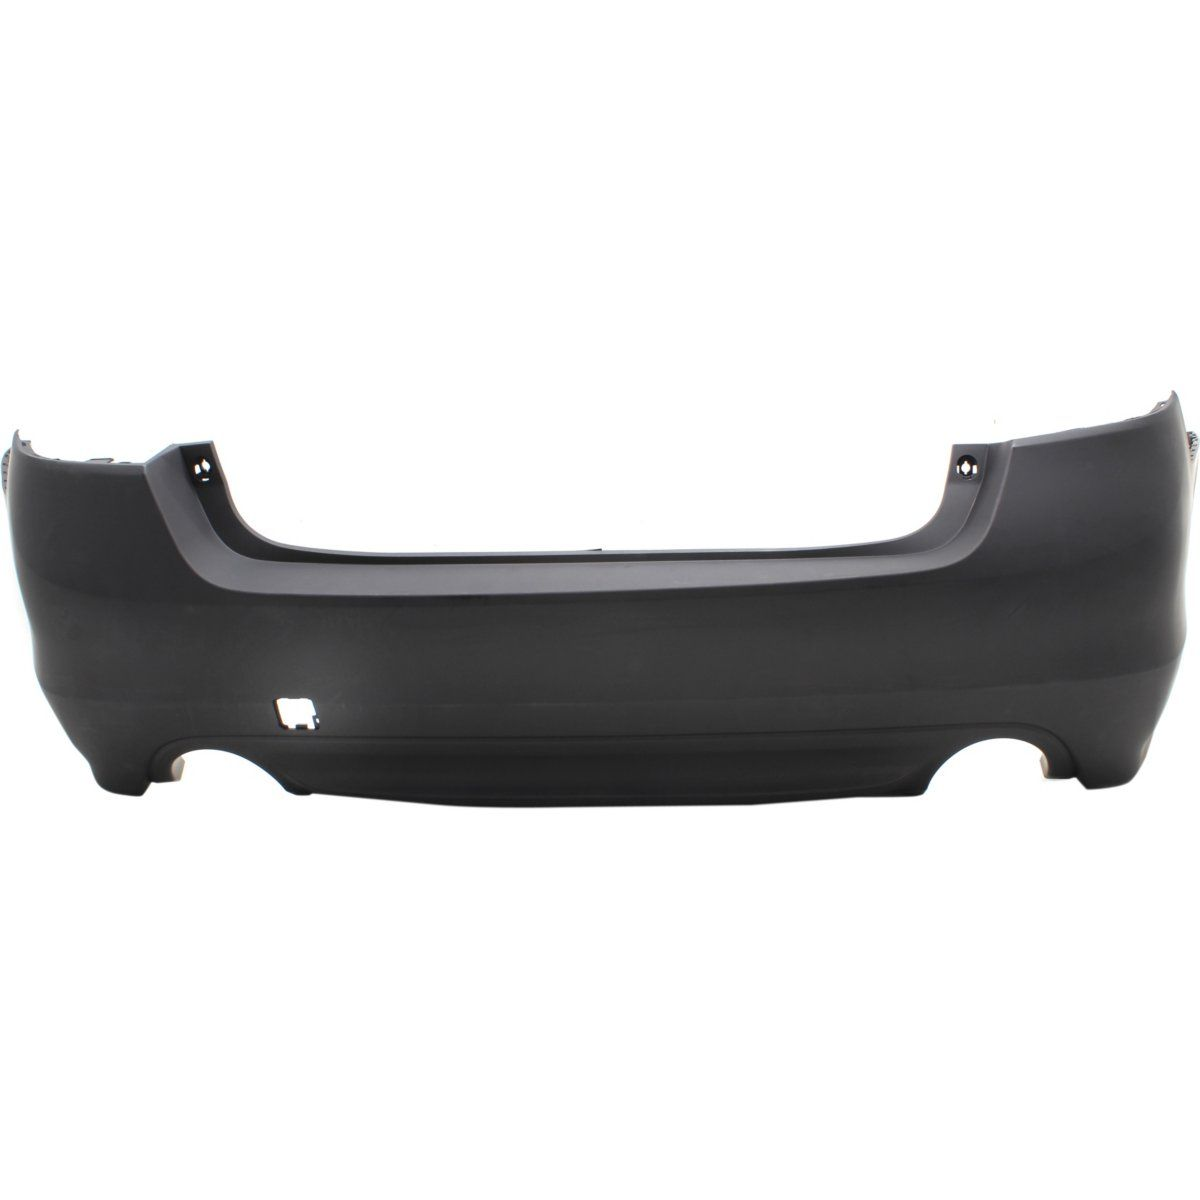 Sponsored Ebay Capa Bumper Cover Facial Rear For Subaru Legacy